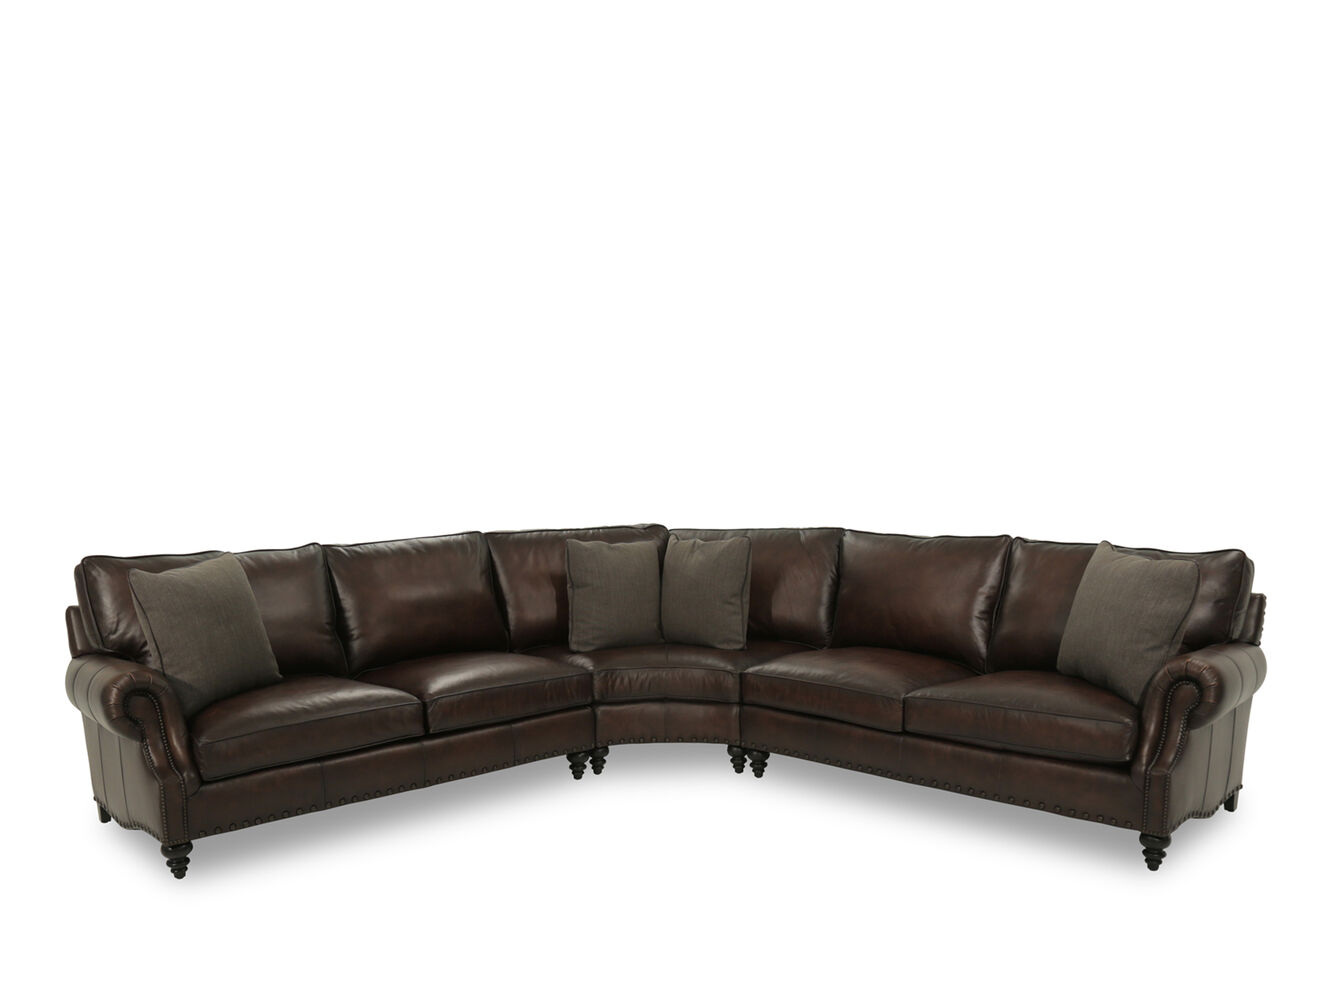 bernhardt fleming leather sectional sofa mathis brothers With bernhardt furniture sectional sofa